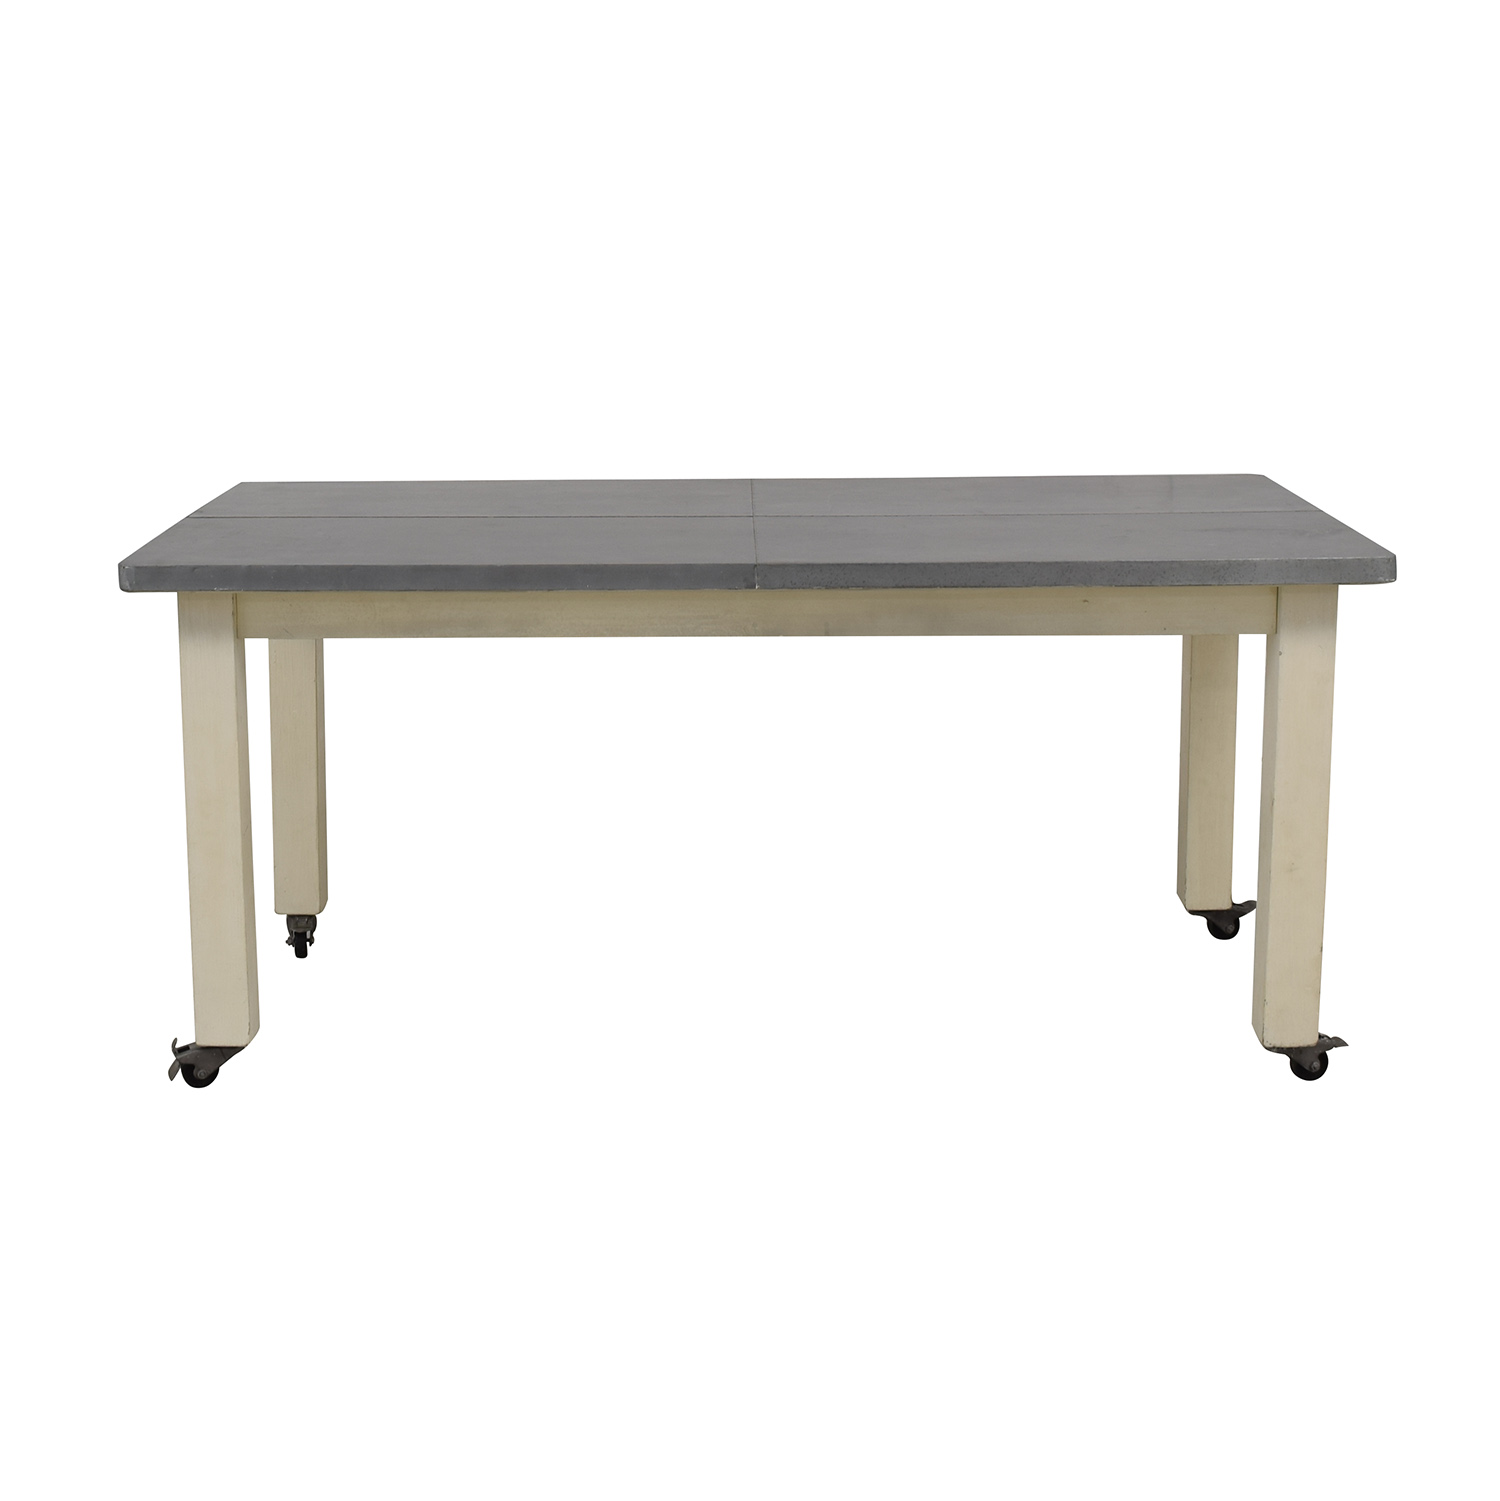 buy Restoration Hardware Restoration Hardware Vintage Schoolhouse Play Table online